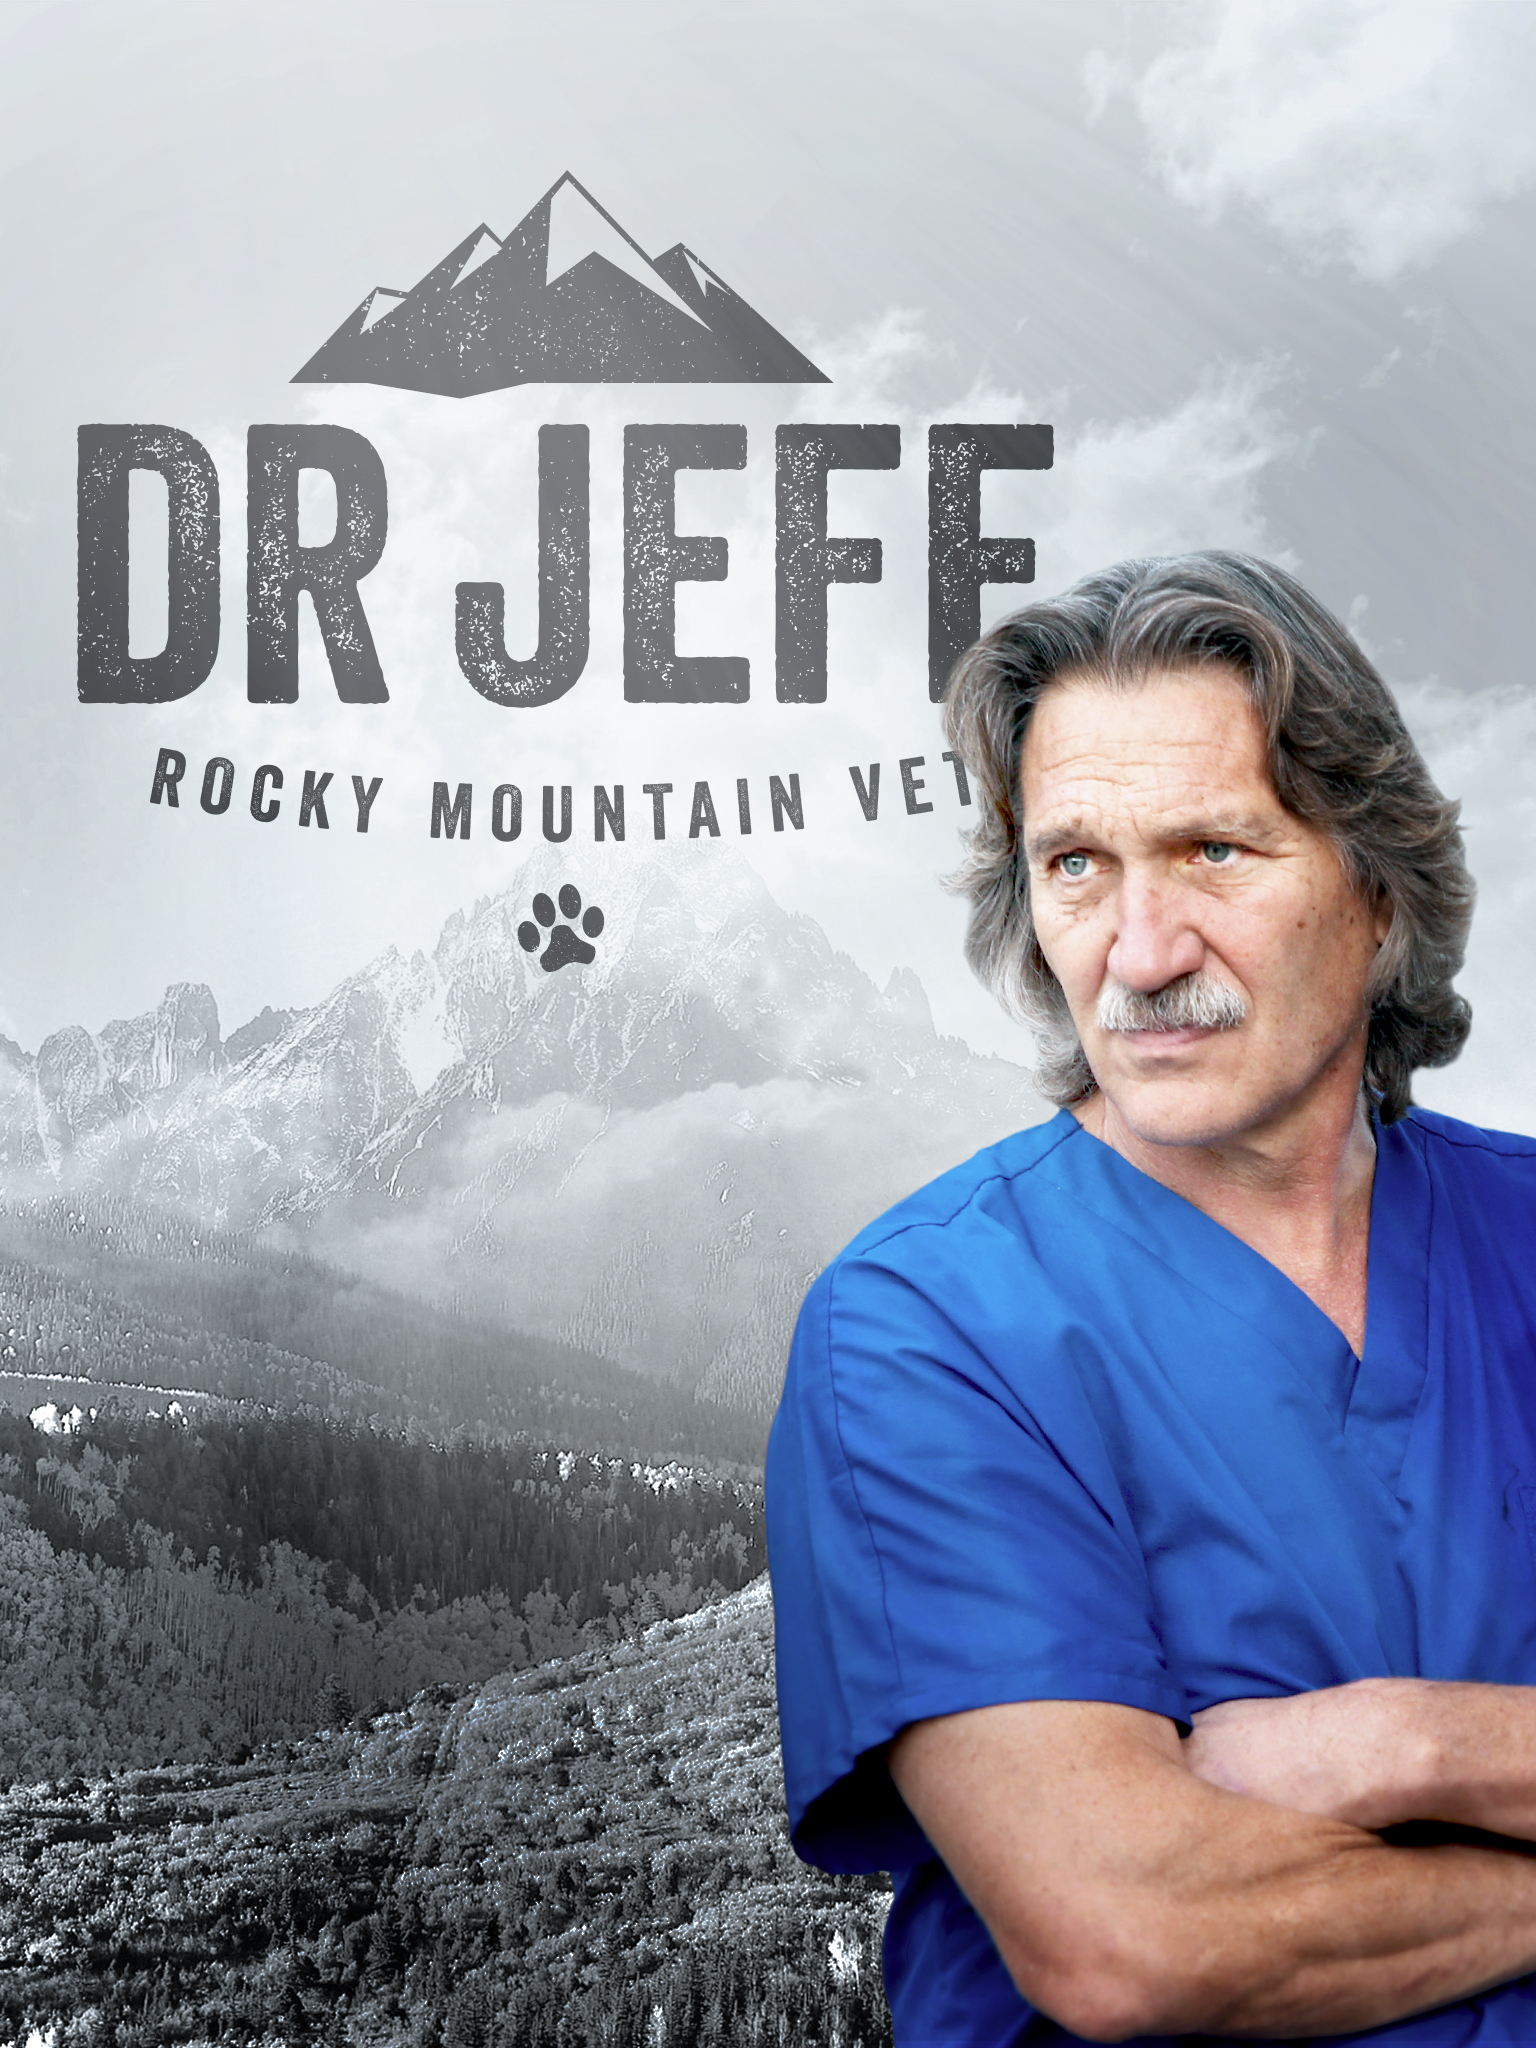 Dr. Jeff: Rocky Mountain Vet Season 7 Episode 5 - Petra's Pigs